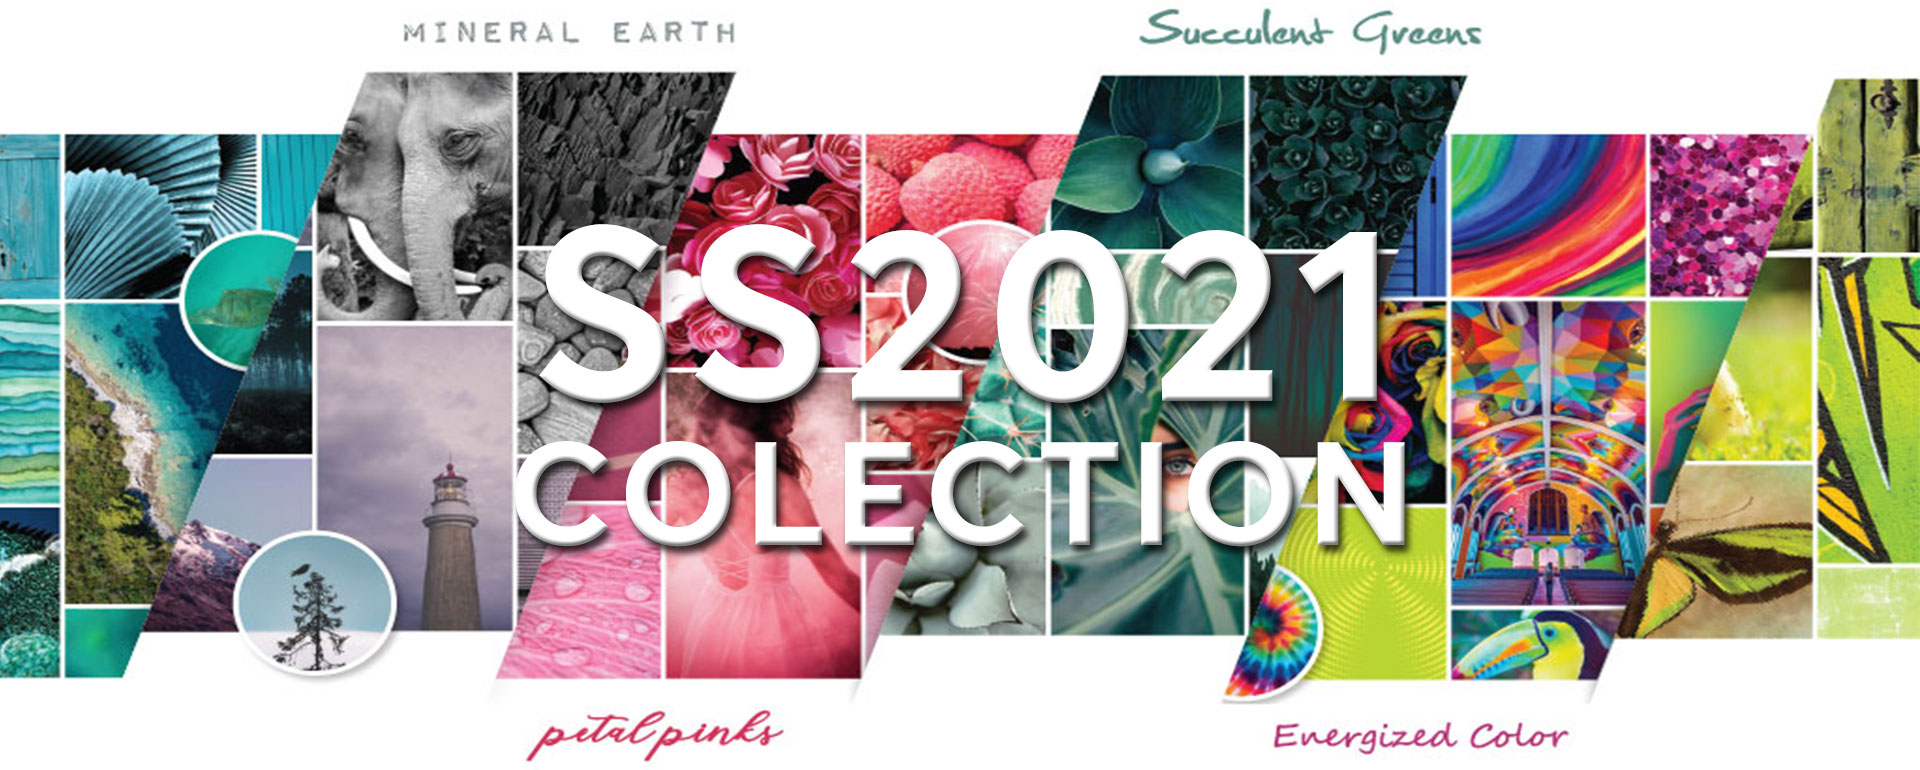 SS2021 COLLECTION